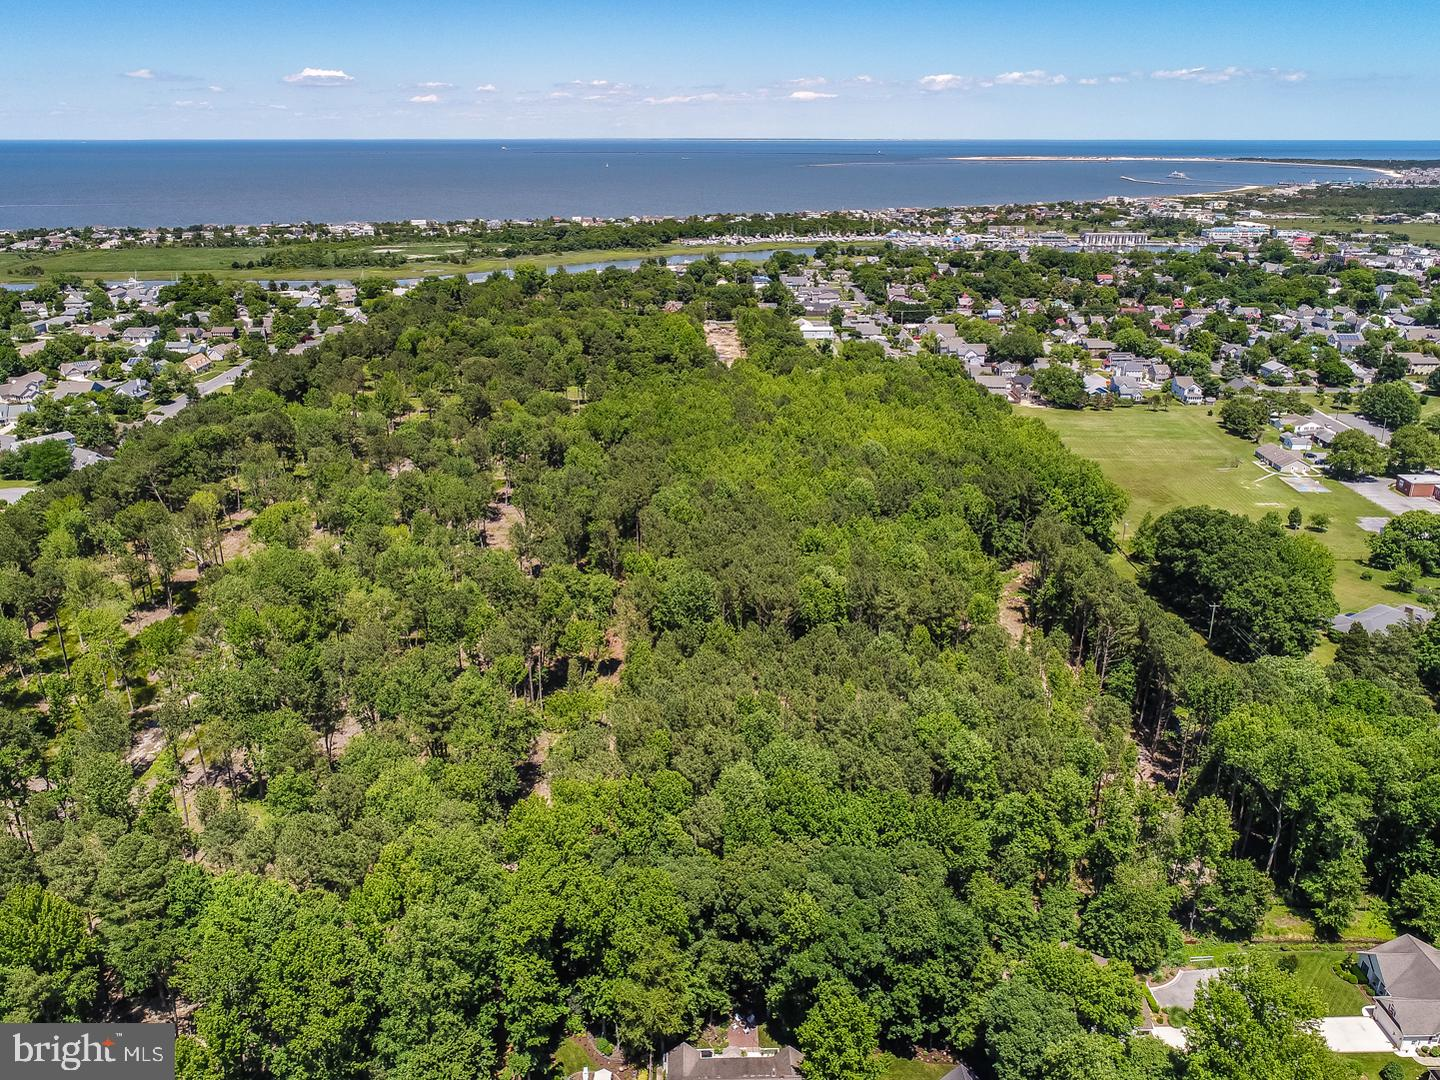 1002047806-300471104962-2021-07-19-11-35-30 Sold Listings - Rehoboth Beach Real Estate - Bryce Lingo and Shaun Tull REALTORS, Rehoboth Beach, Delaware